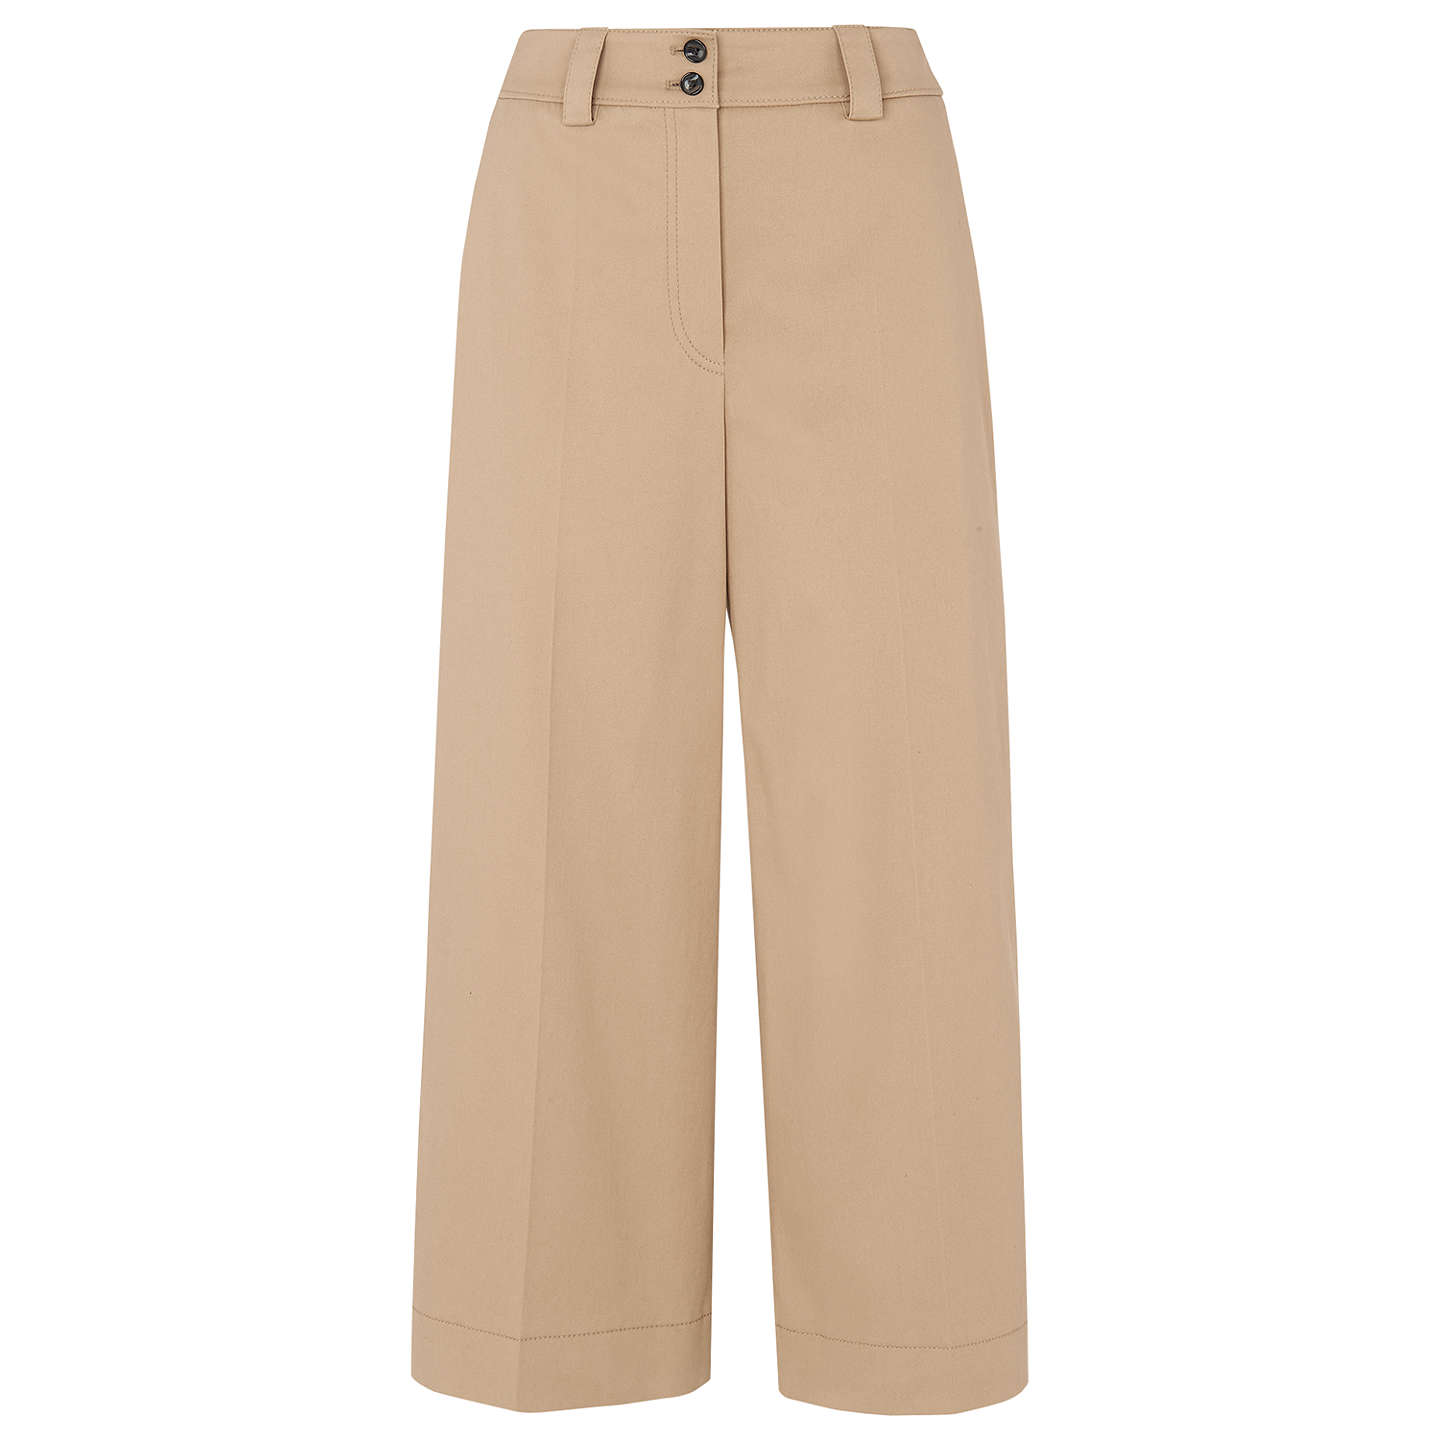 BuyWhistles Cotton Wide Leg Trousers, Beige, 6 Online at johnlewis.com